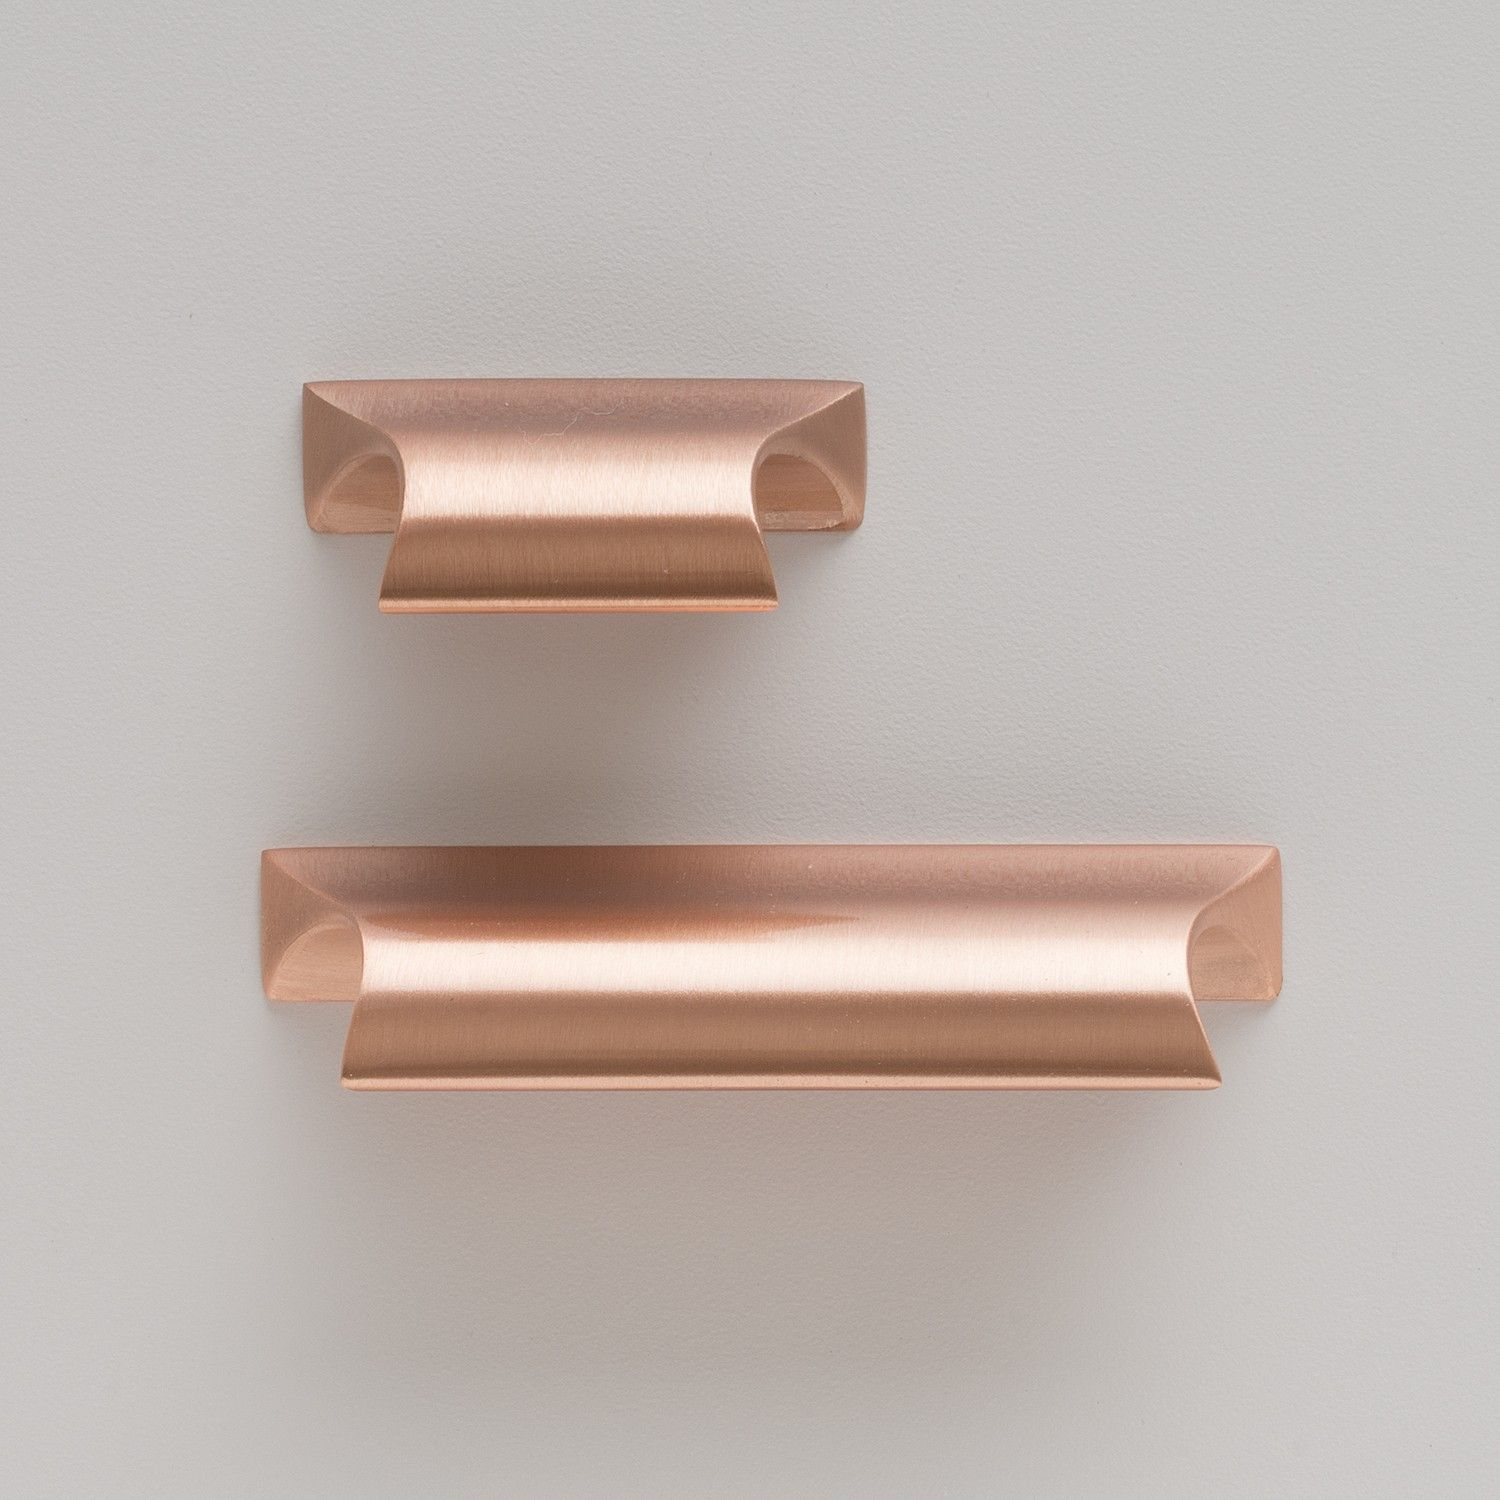 Card File Pull Satin Nickel Drawer Pulls Copper Cabinet Pulls